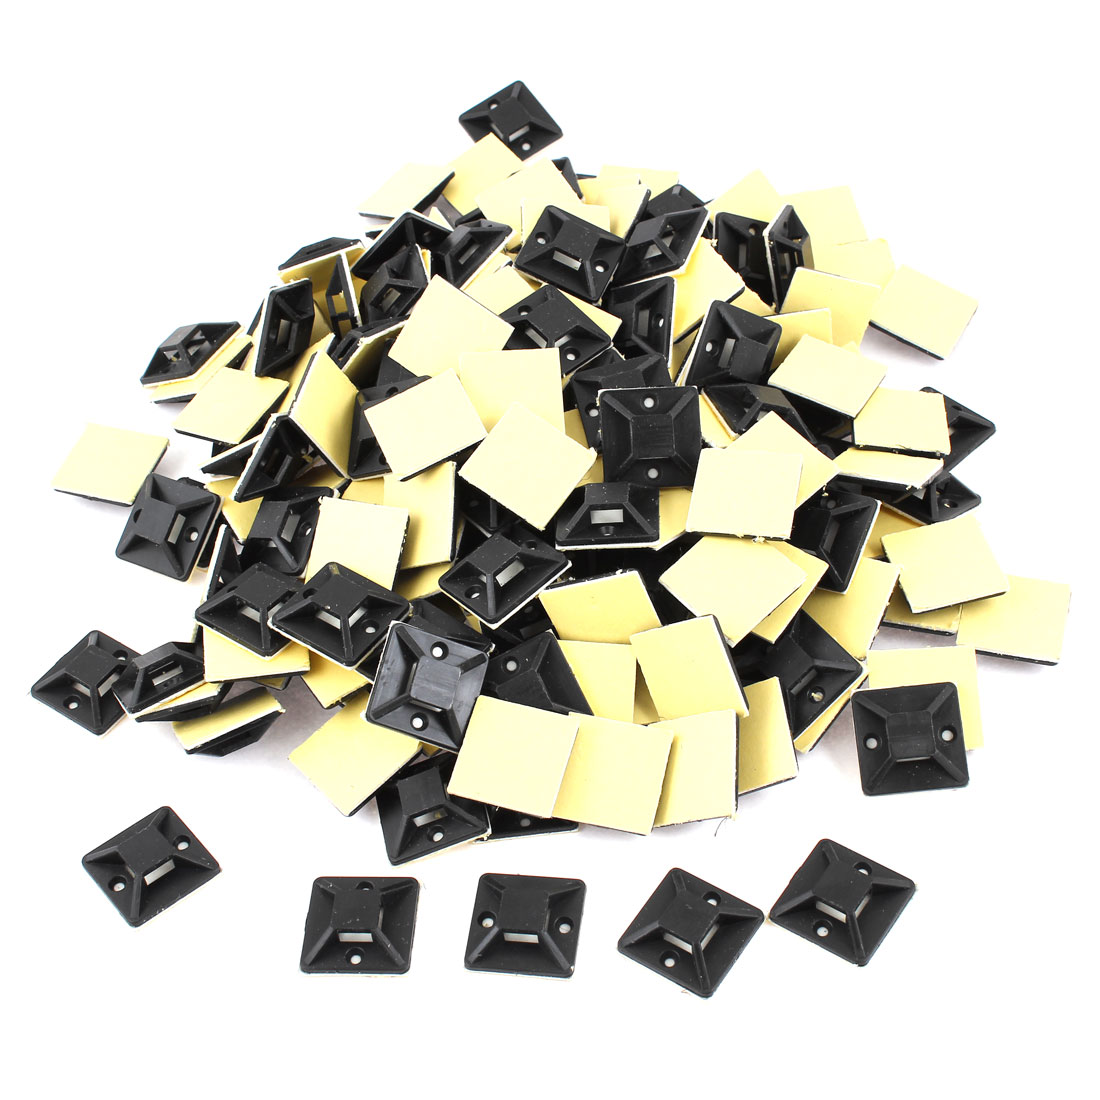 500 Pcs Black Self Adhesive Cable Tie Mount Base 25mm x 25mm